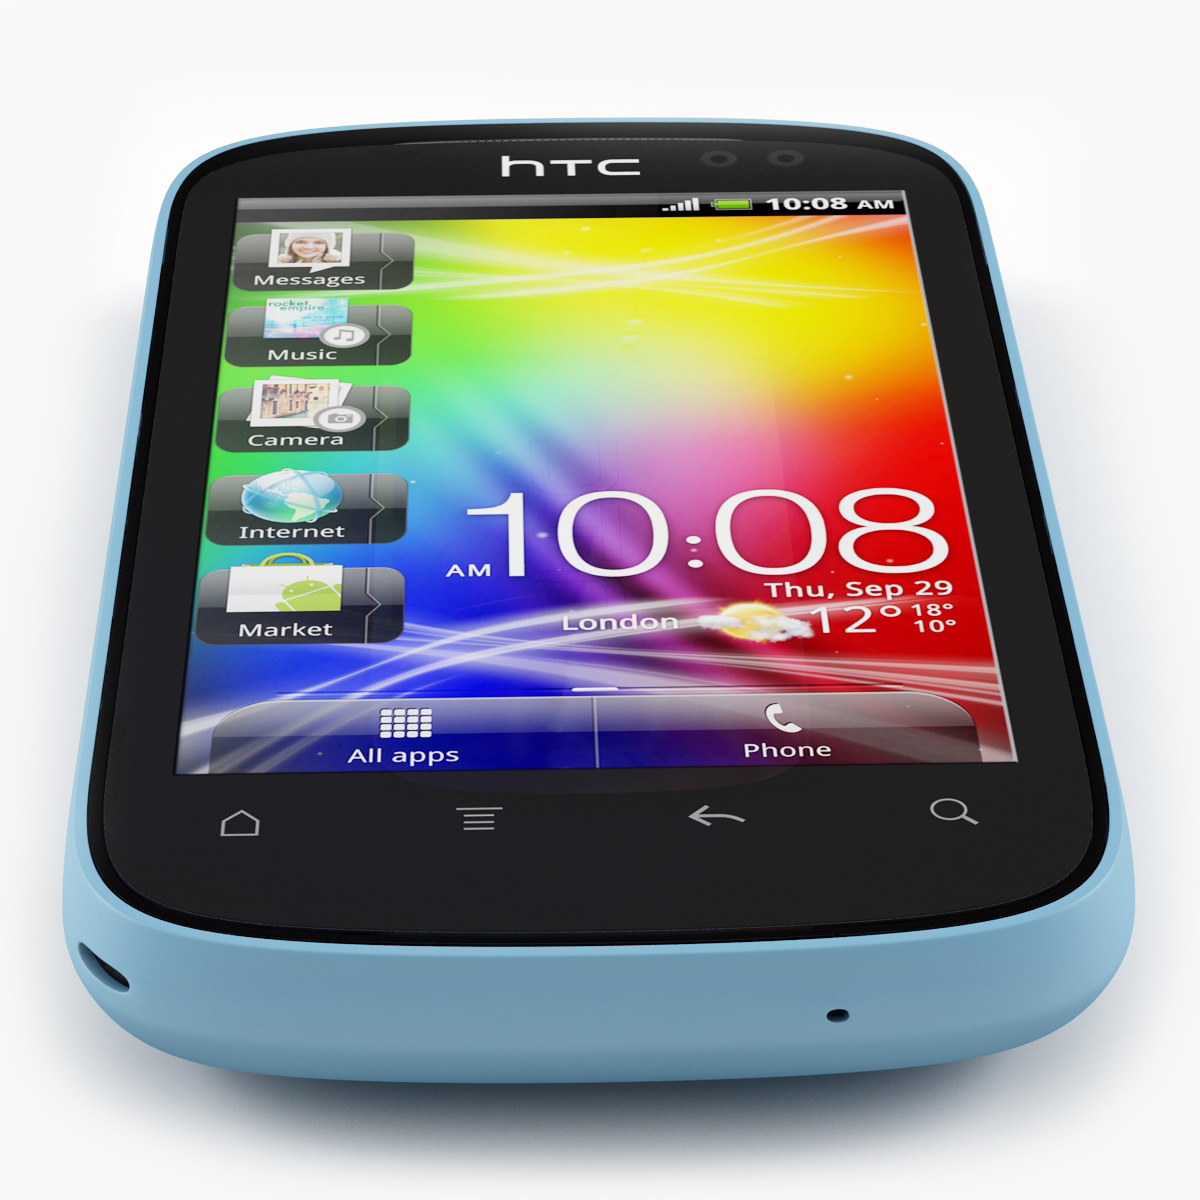 Htc_Explorer_Blue_00.jpg